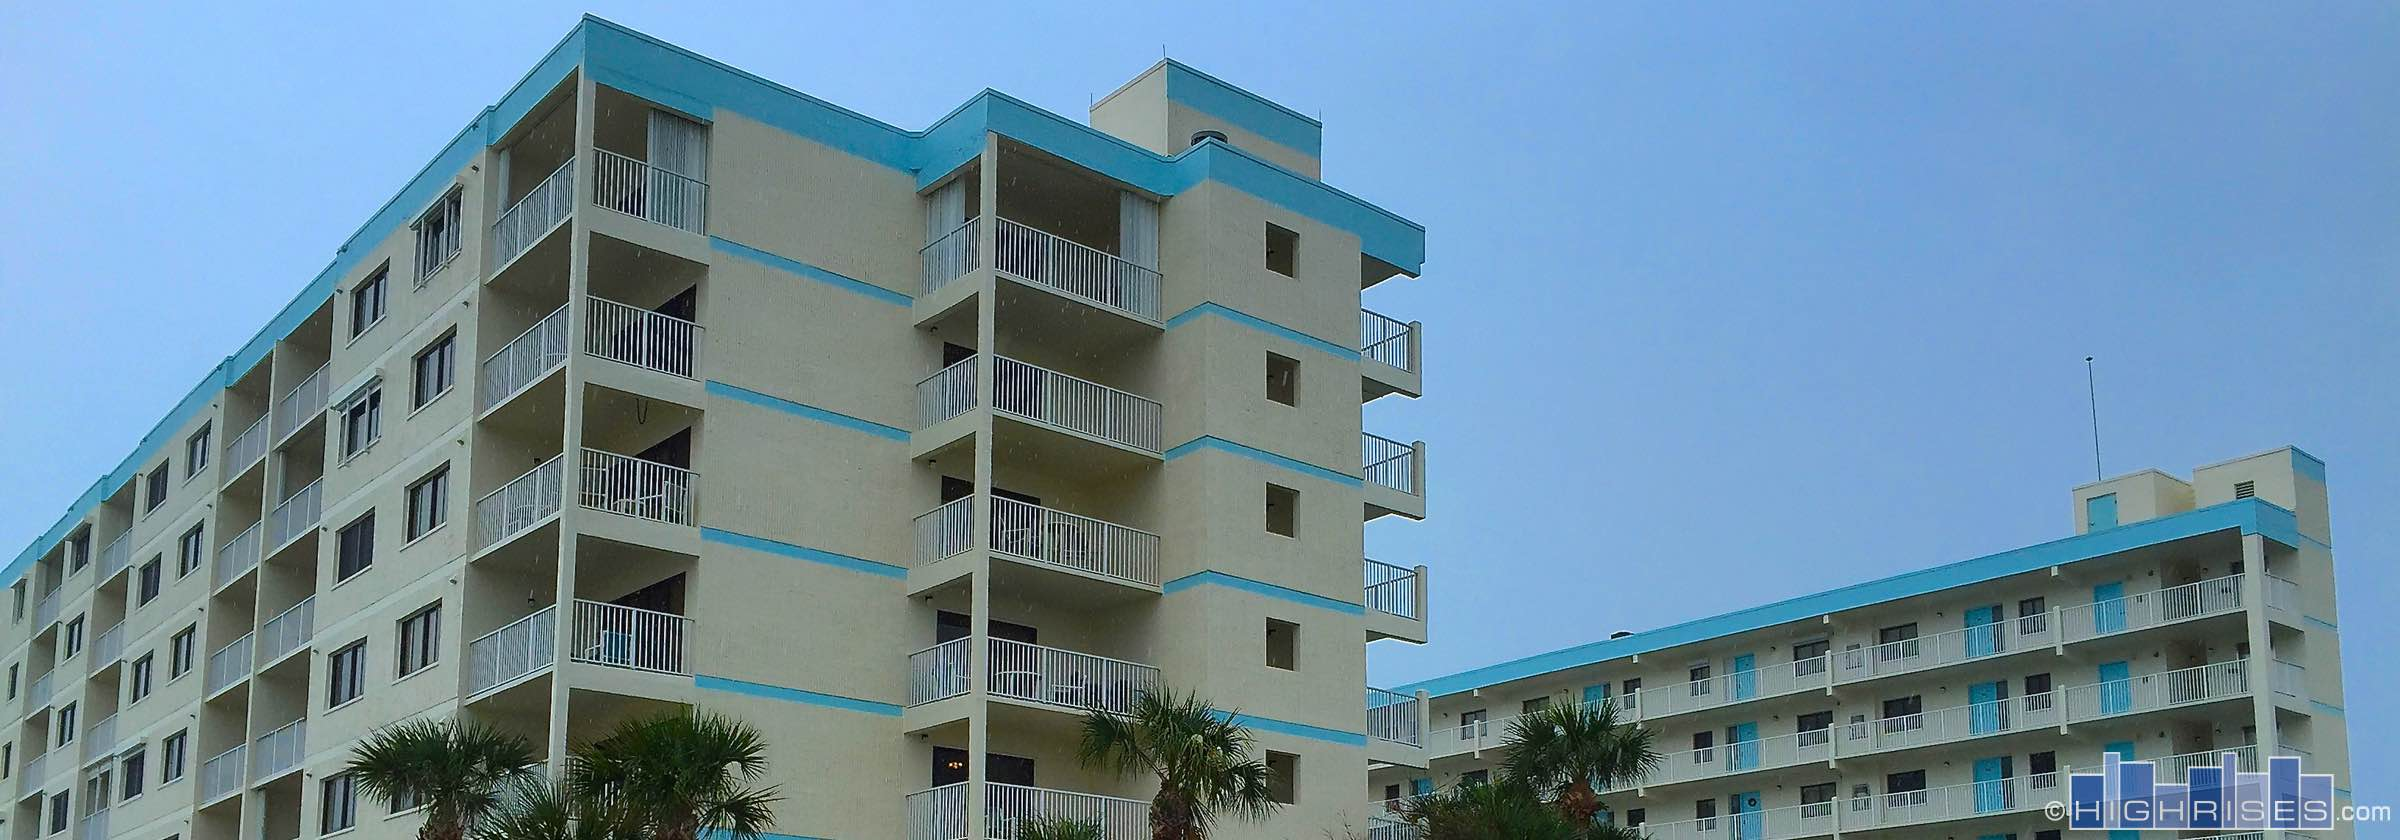 Sandcastles Condos Of Cocoa Beach Fl 1000 1050 N Atlantic Ave The Marlin